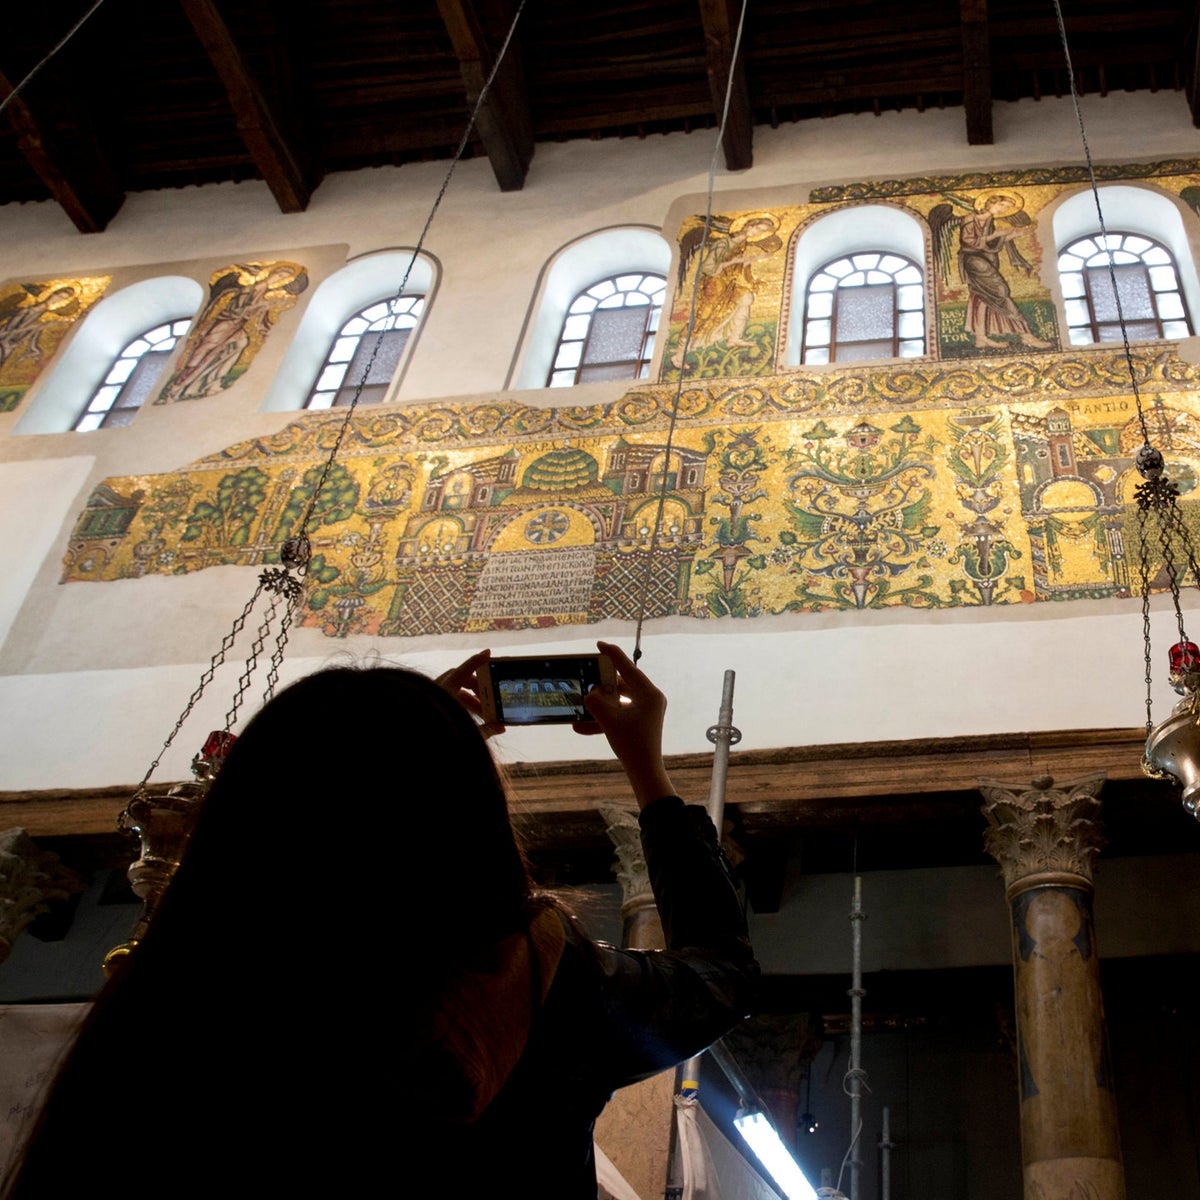 In this Thursday, Dec. 6, 2018 photo, a visitor photographs a renovated part of a fresco inside the Church of the Nativity, built atop the site where Christians believe Jesus Christ was born, in the West Bank City of Bethlehem. City officials are optimistic that the renovated church will help add to a recent tourism boom and give a boost to the shrinking local Christian population.